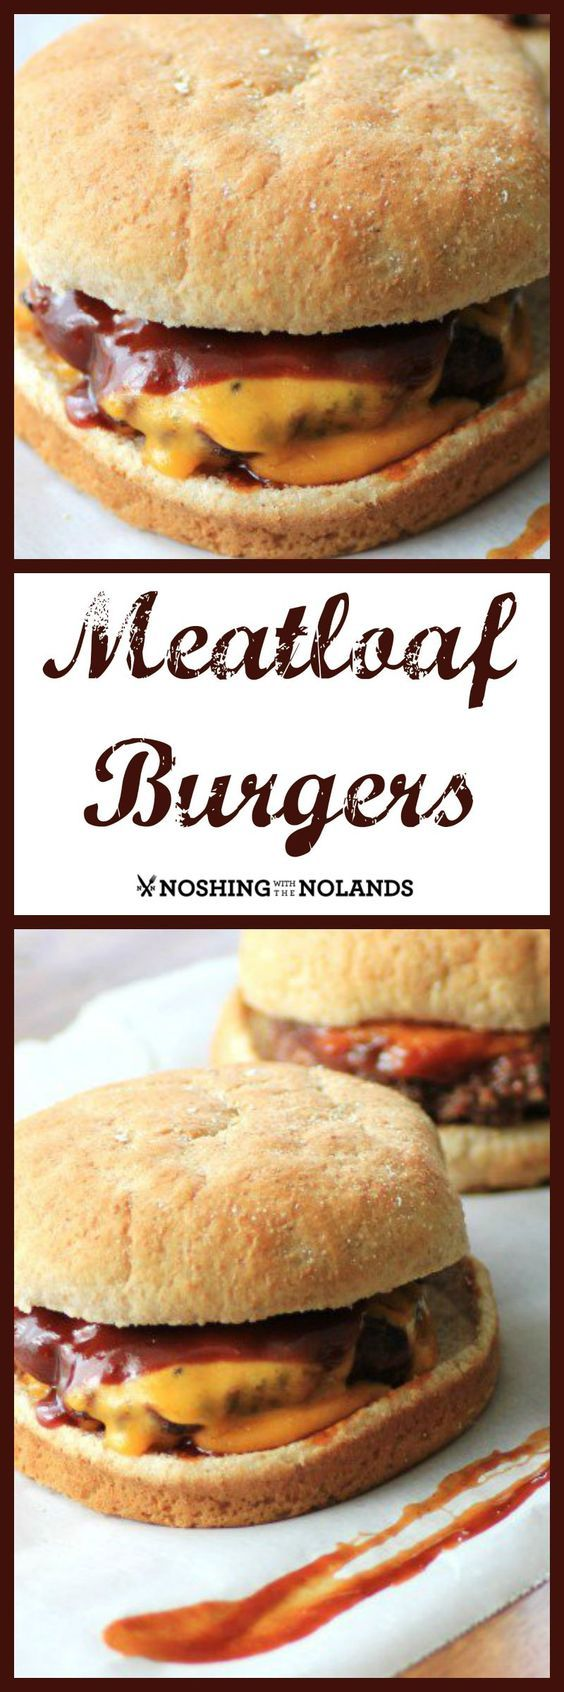 Then try these Mouth Watering Monday, MWM - Meatloaf Burgers. Full on meatloaf tastes complete with the sauce, yet in a burger with cheese.